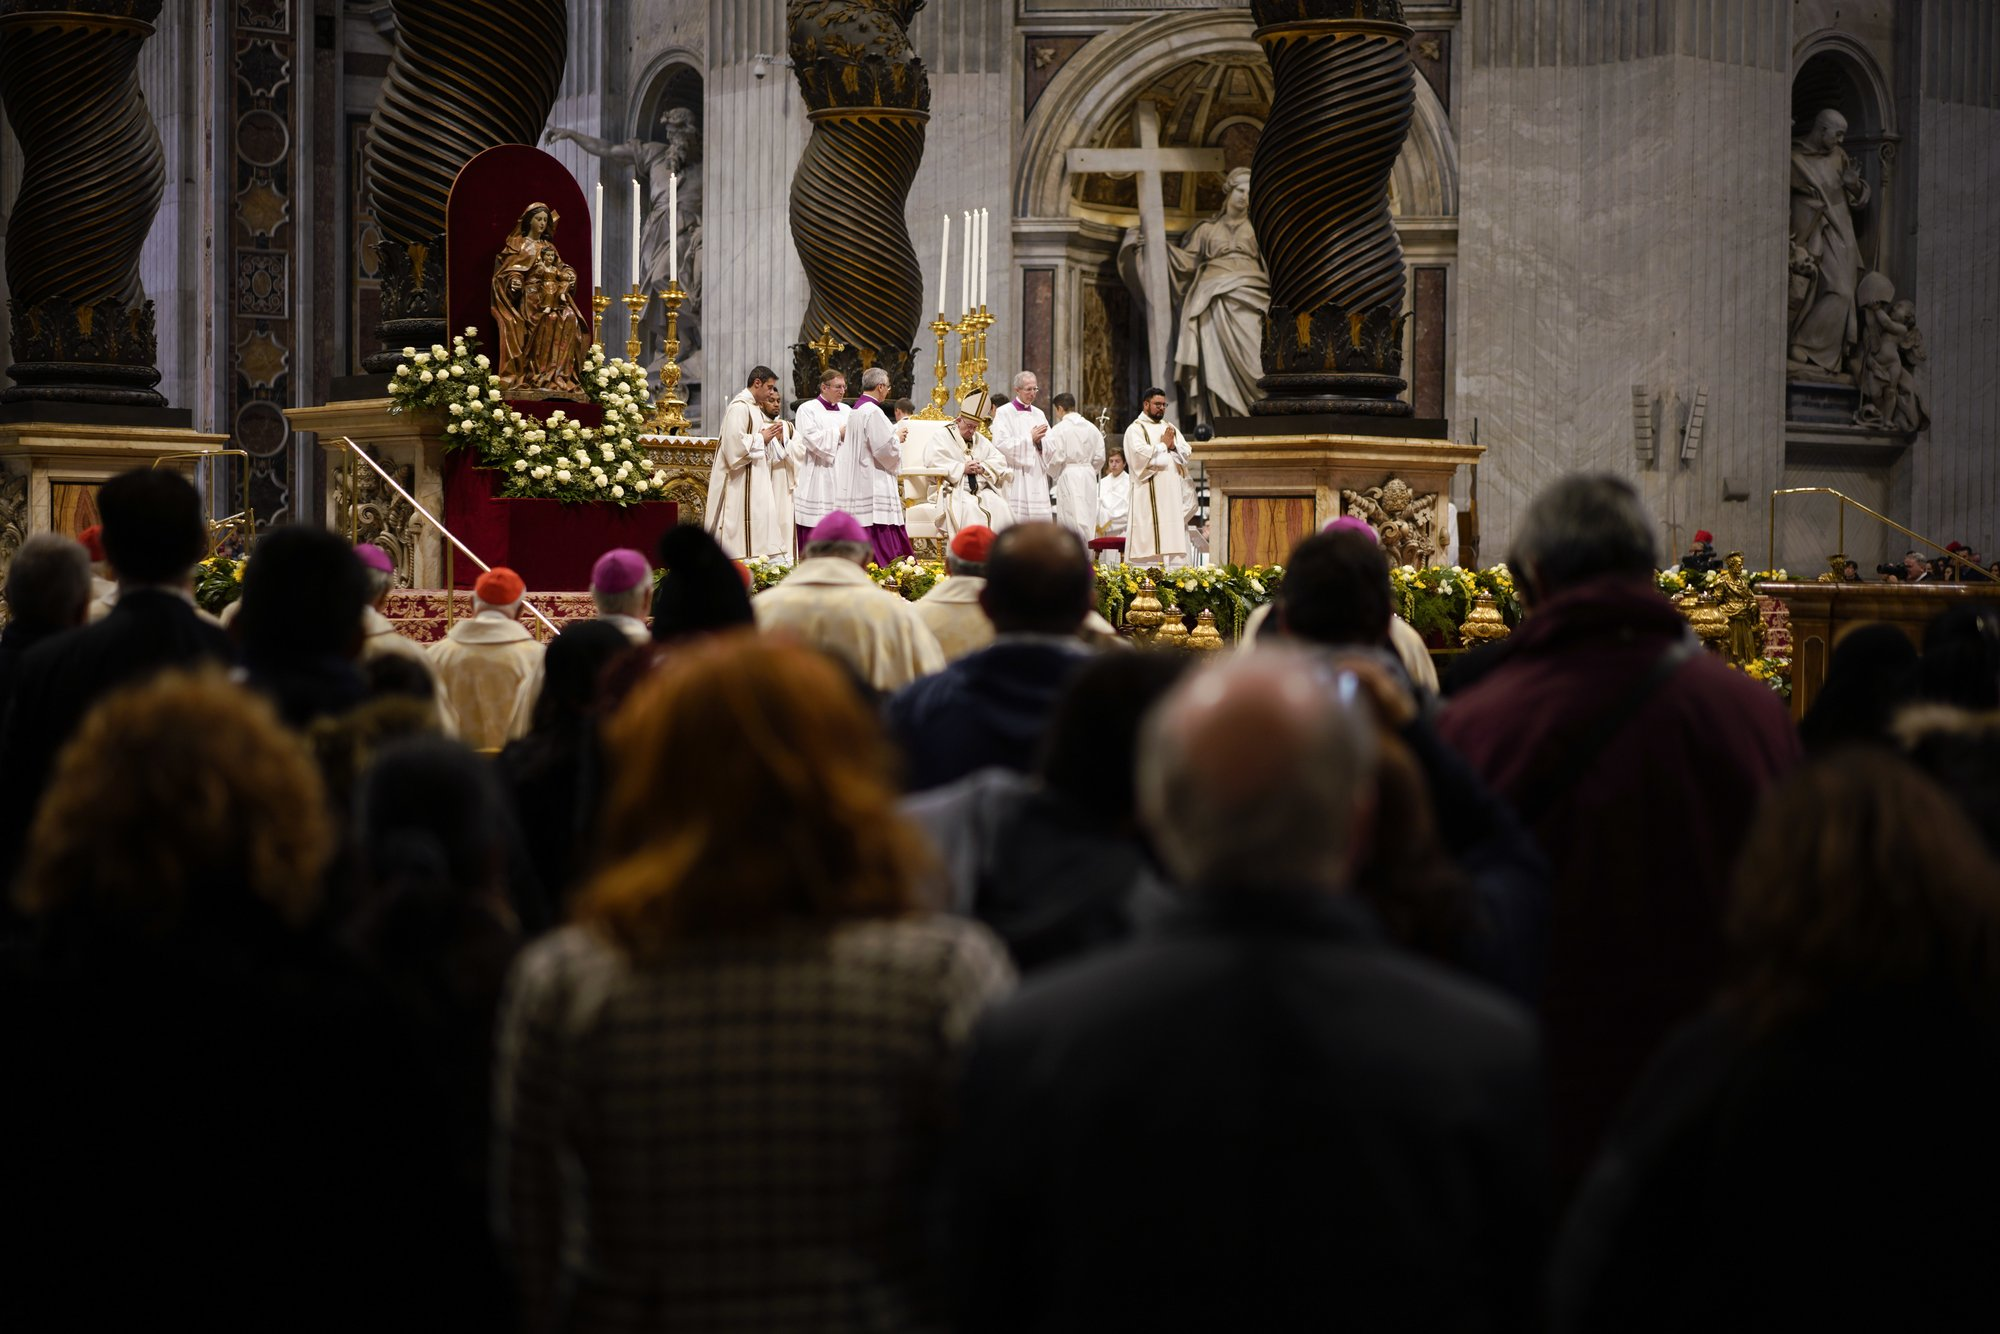 apnews.com - Pope: the din of 'ever more rich' drown out cries of poor